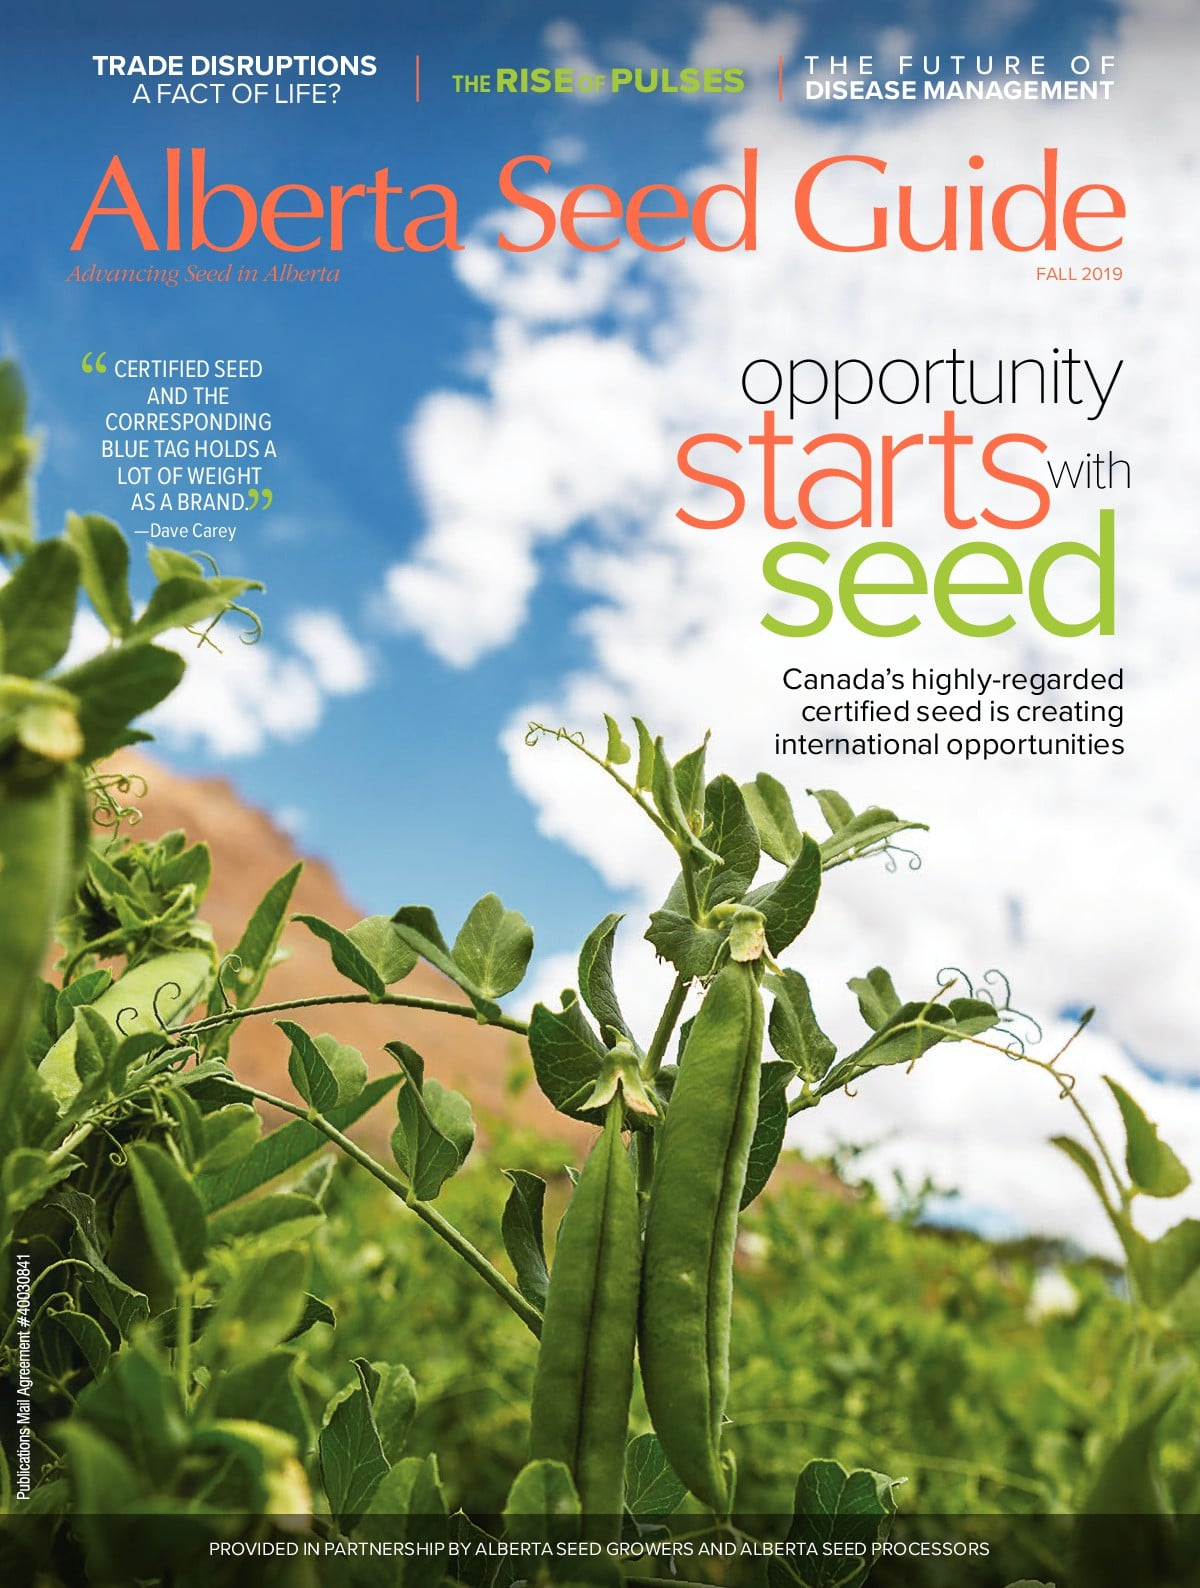 Fall 2019 – Opportunity Starts with Seed